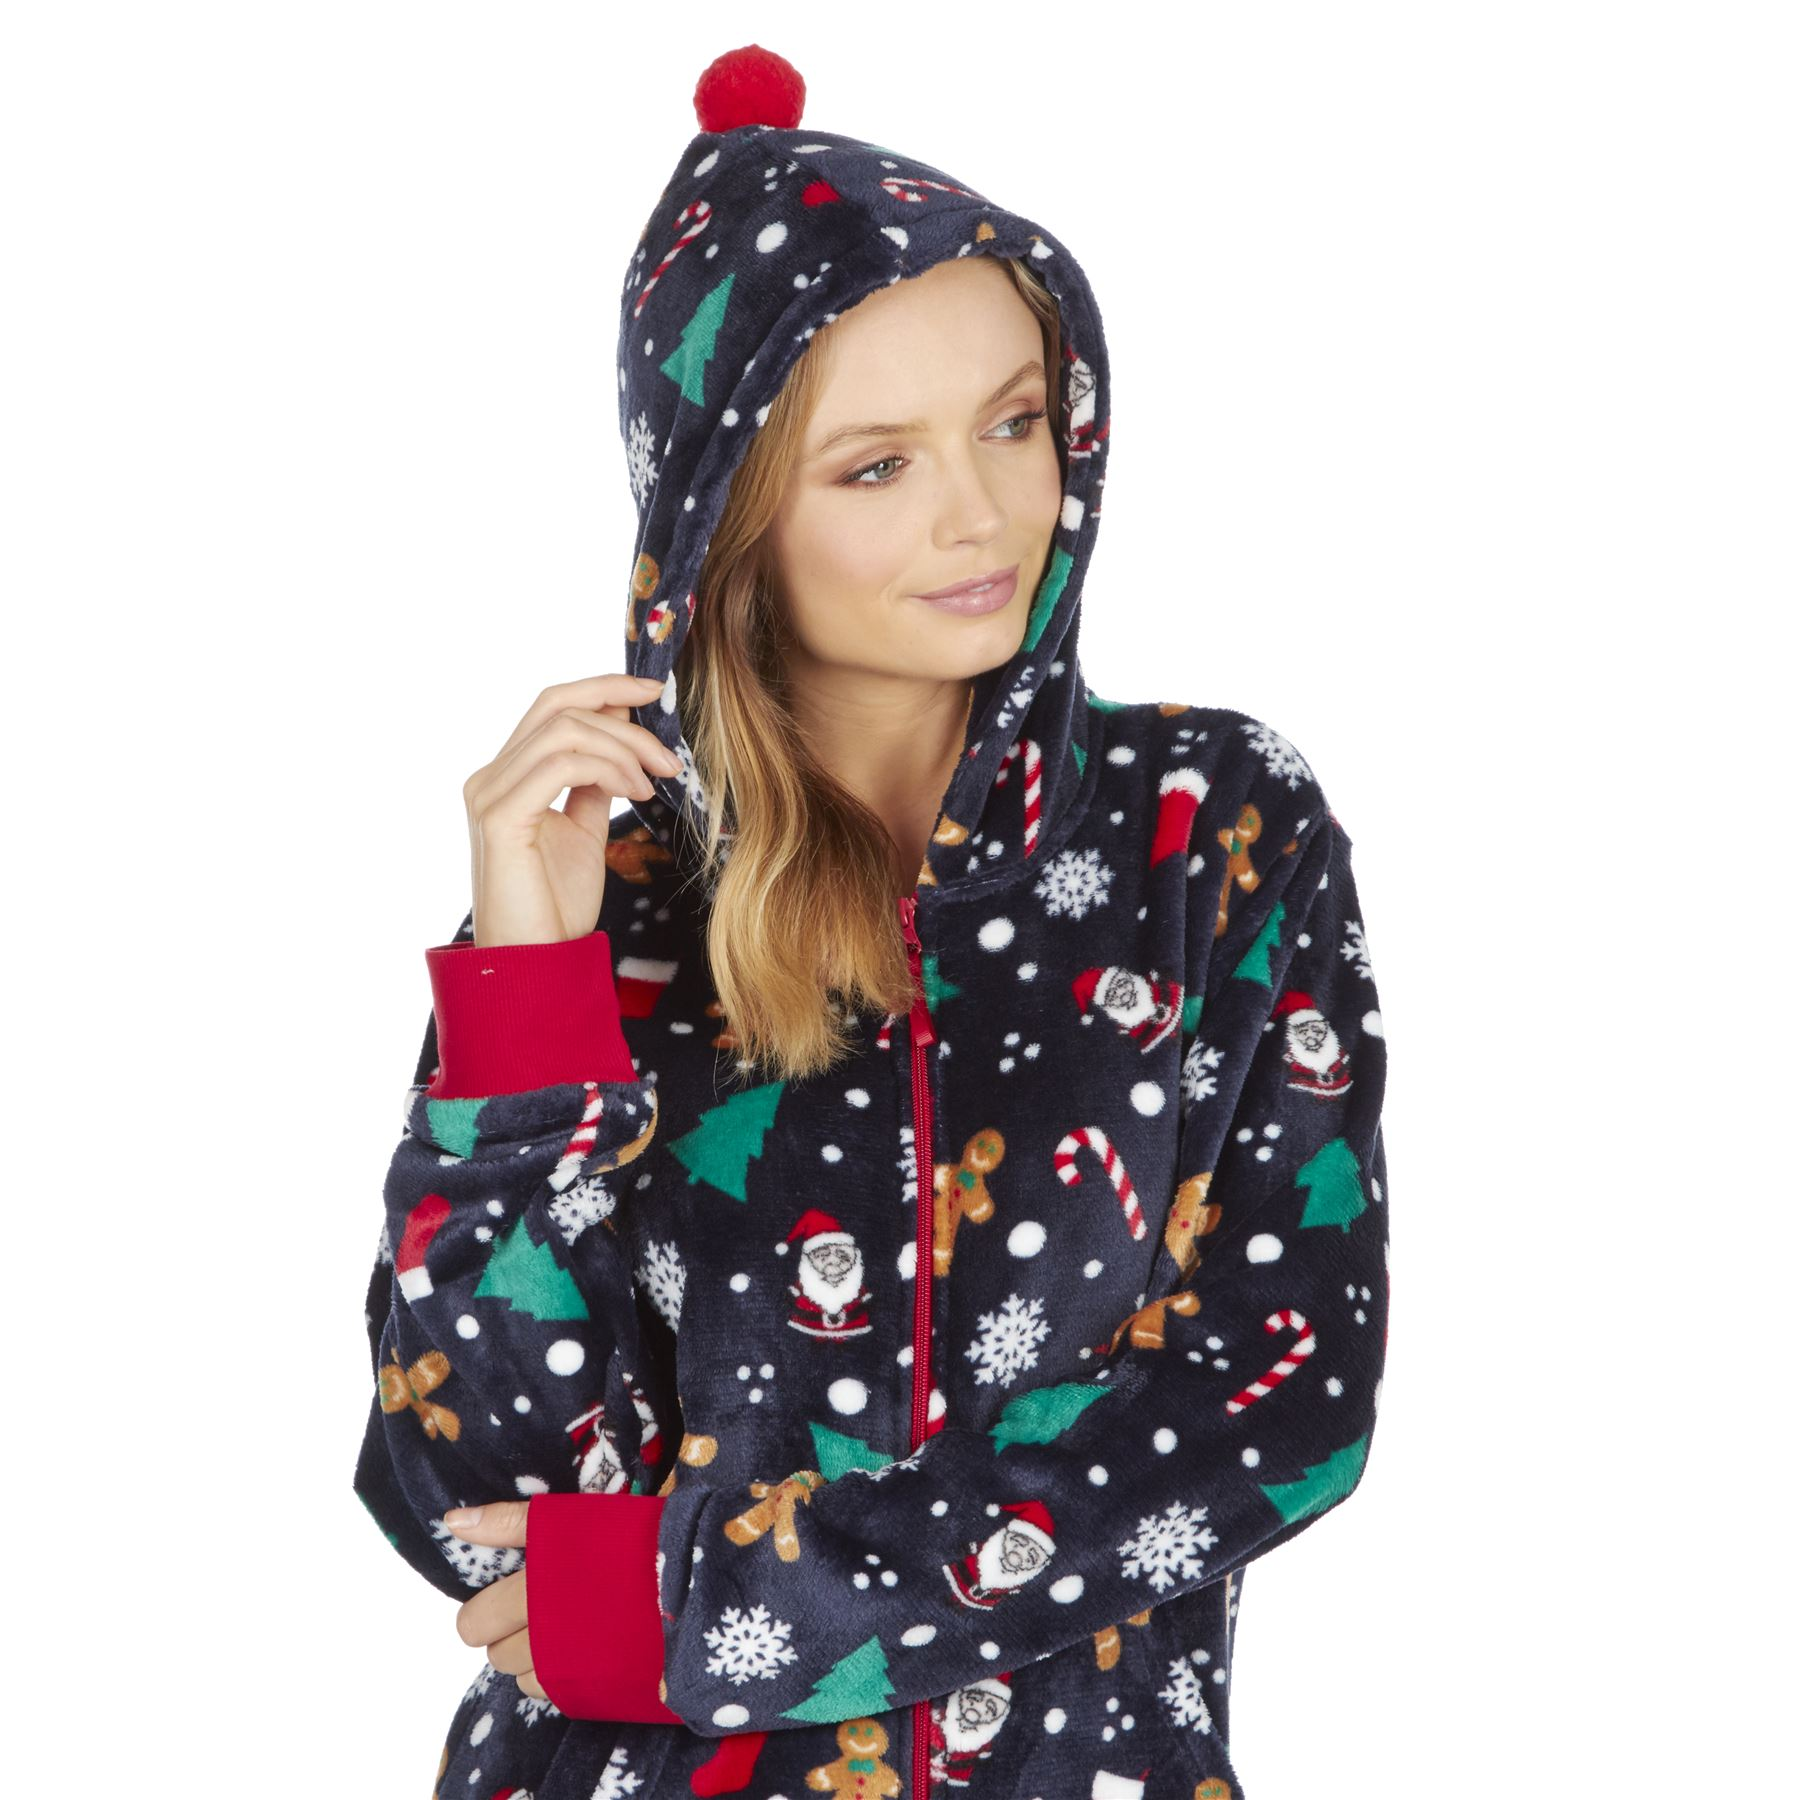 Ladies-Womens-Girls-Fleece-All-In-One-Pyjamas-Outfit-Jumpsuit-Costume-Size-6-18 thumbnail 60